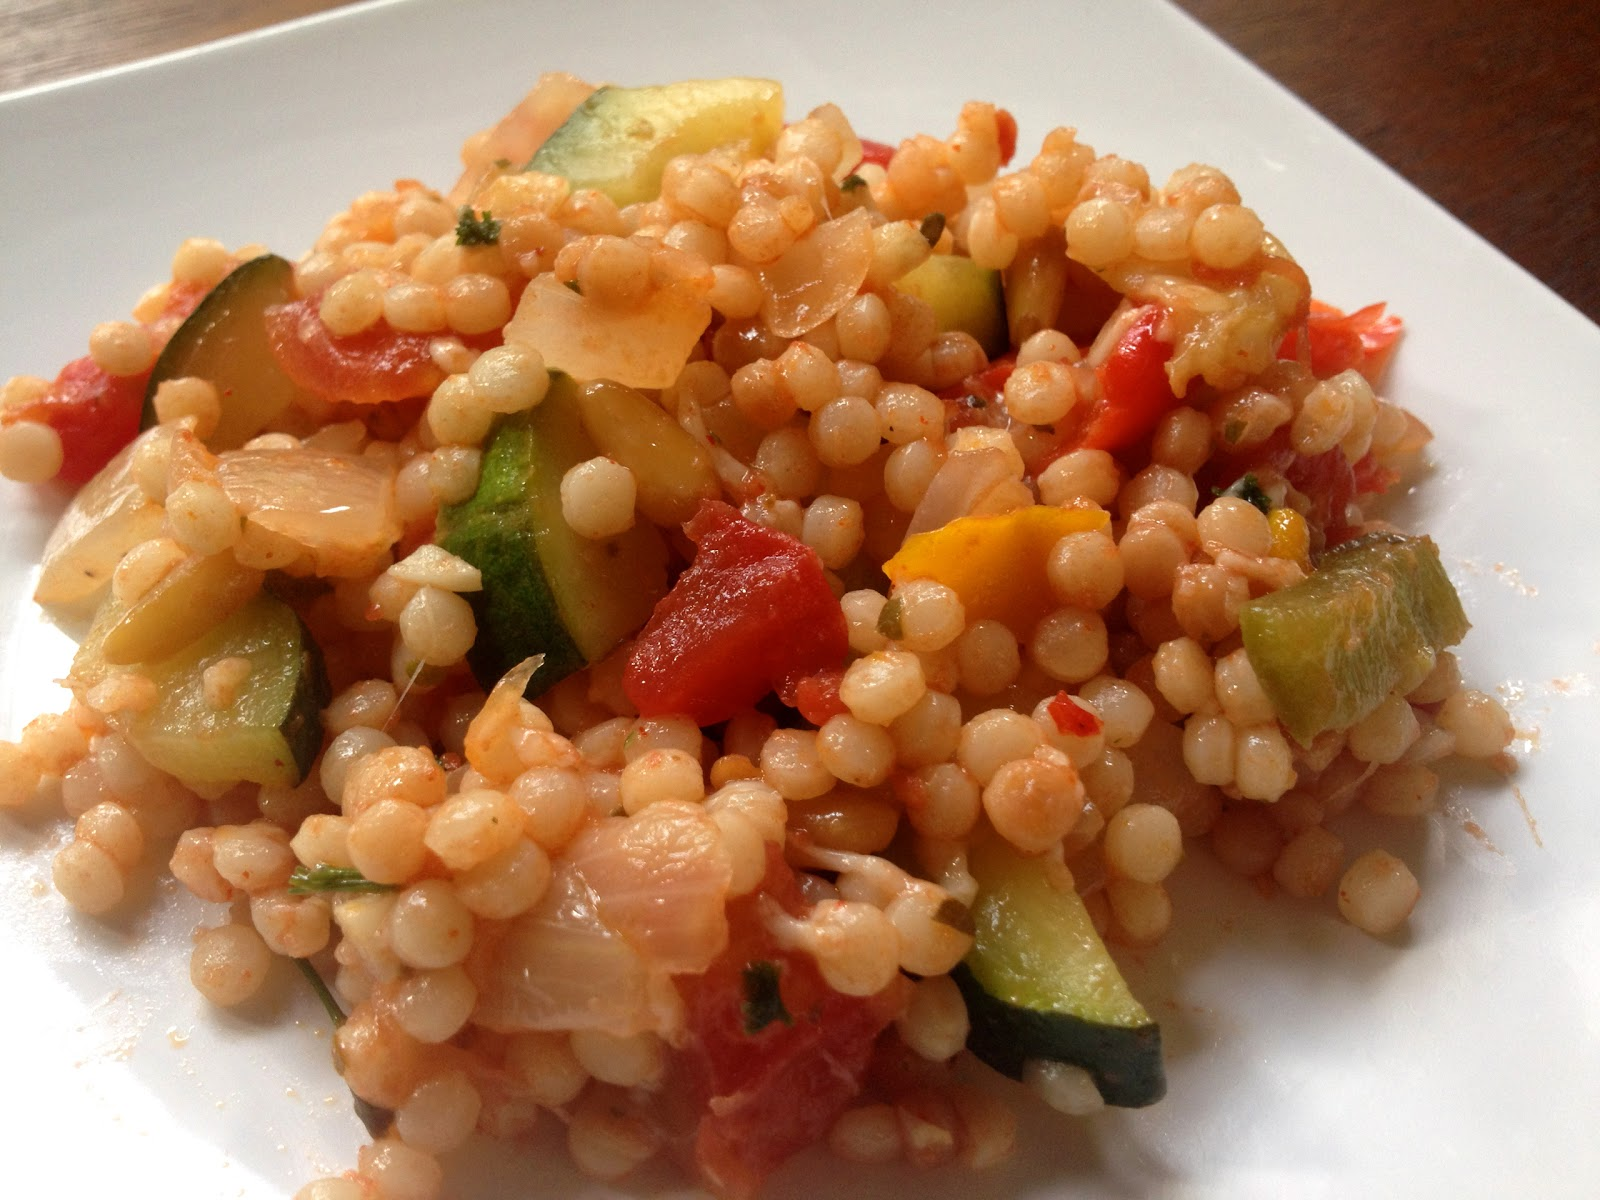 http://1.bp.blogspot.com/-MOsVrB4sU7g/UAIbyldpPBI/AAAAAAAABK4/zWftoQ4zr9U/s1600/ratatouille+with+pearled+couscous+zucchini+tomatoes+recipes+vegetarian+healthy+easy+italian+food+parmesan+cheese++recipes+for+extra+zucchini+israeli+couscous+ratatouille.jpg